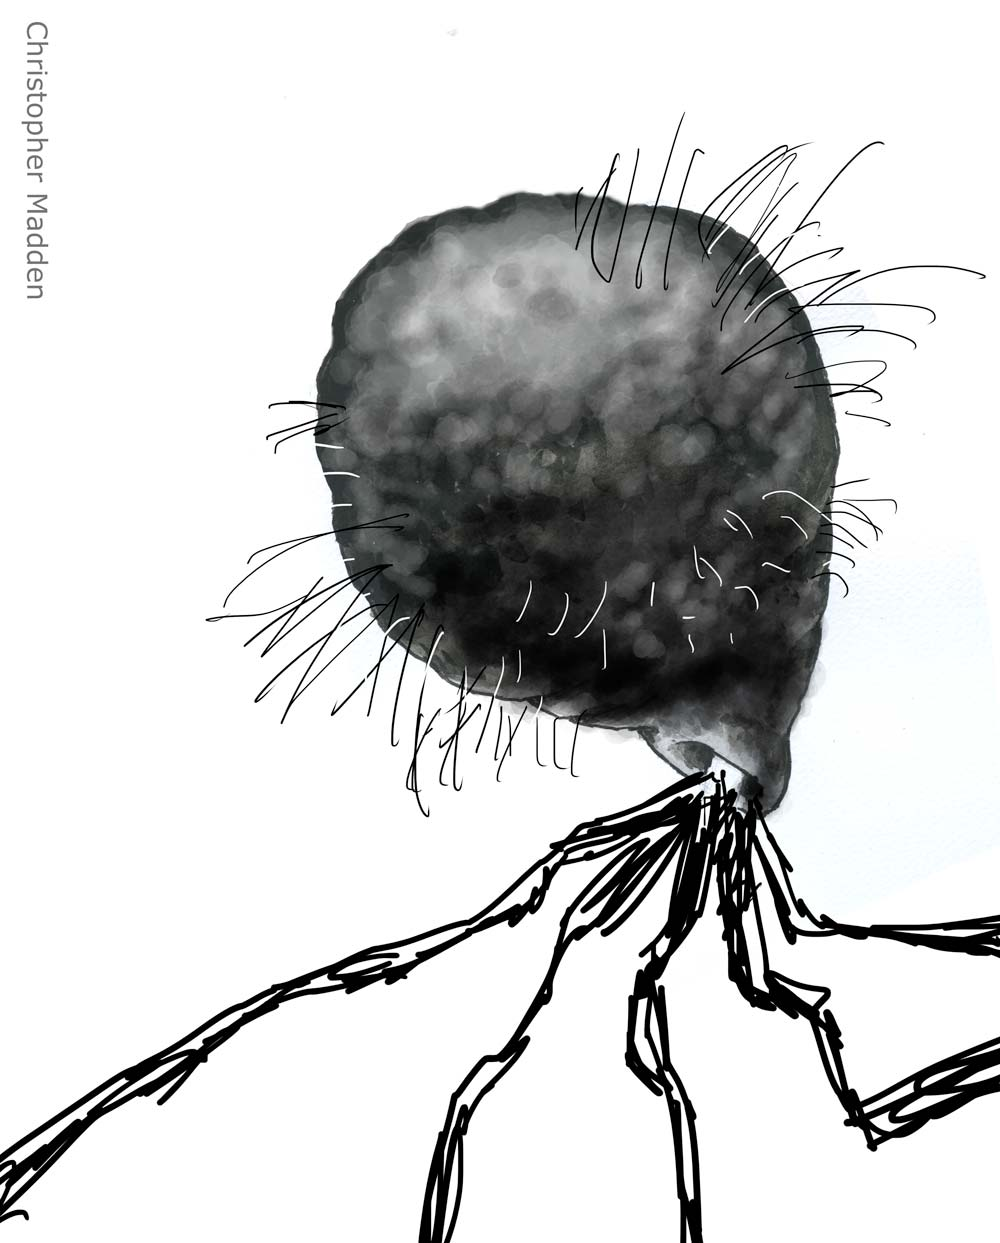 contemporary art monochrome sketch - unsettling imaginary organic form